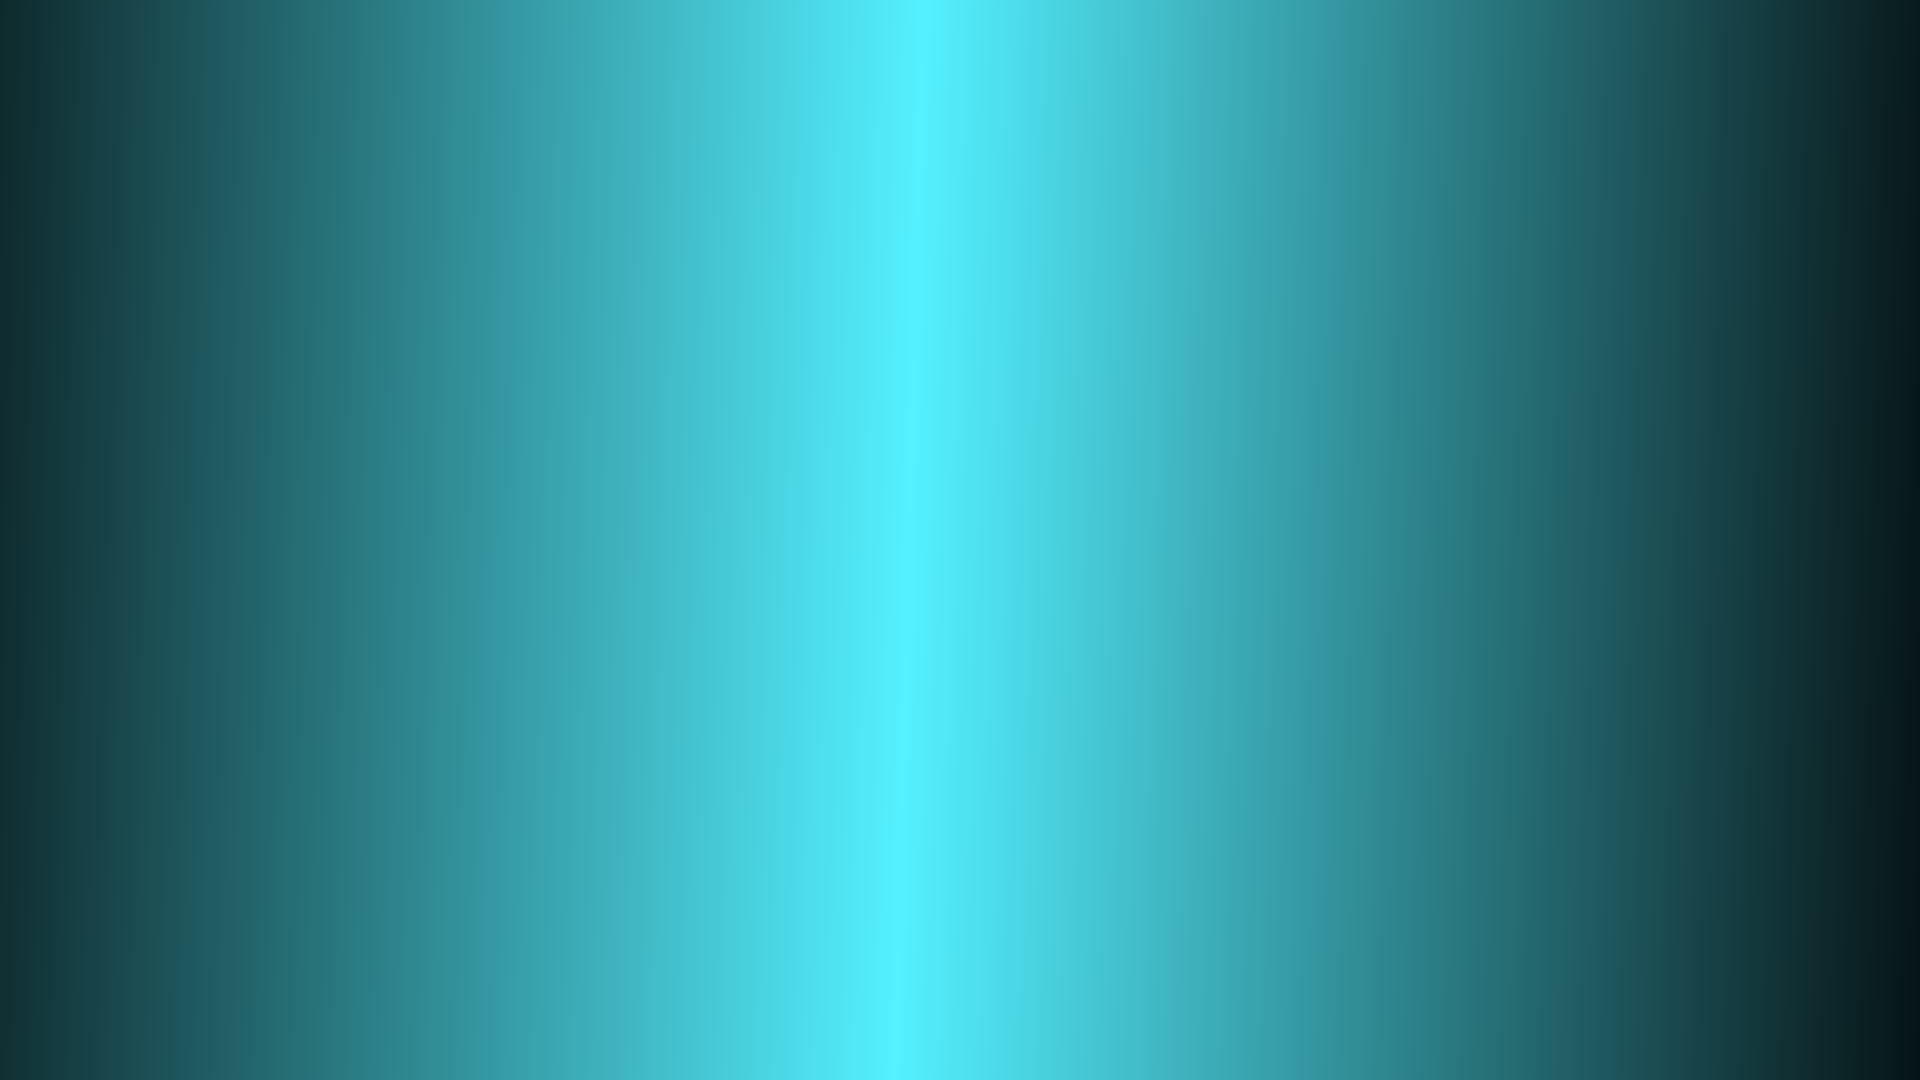 Wallpapers For Dark Teal Background Tumblr Teal